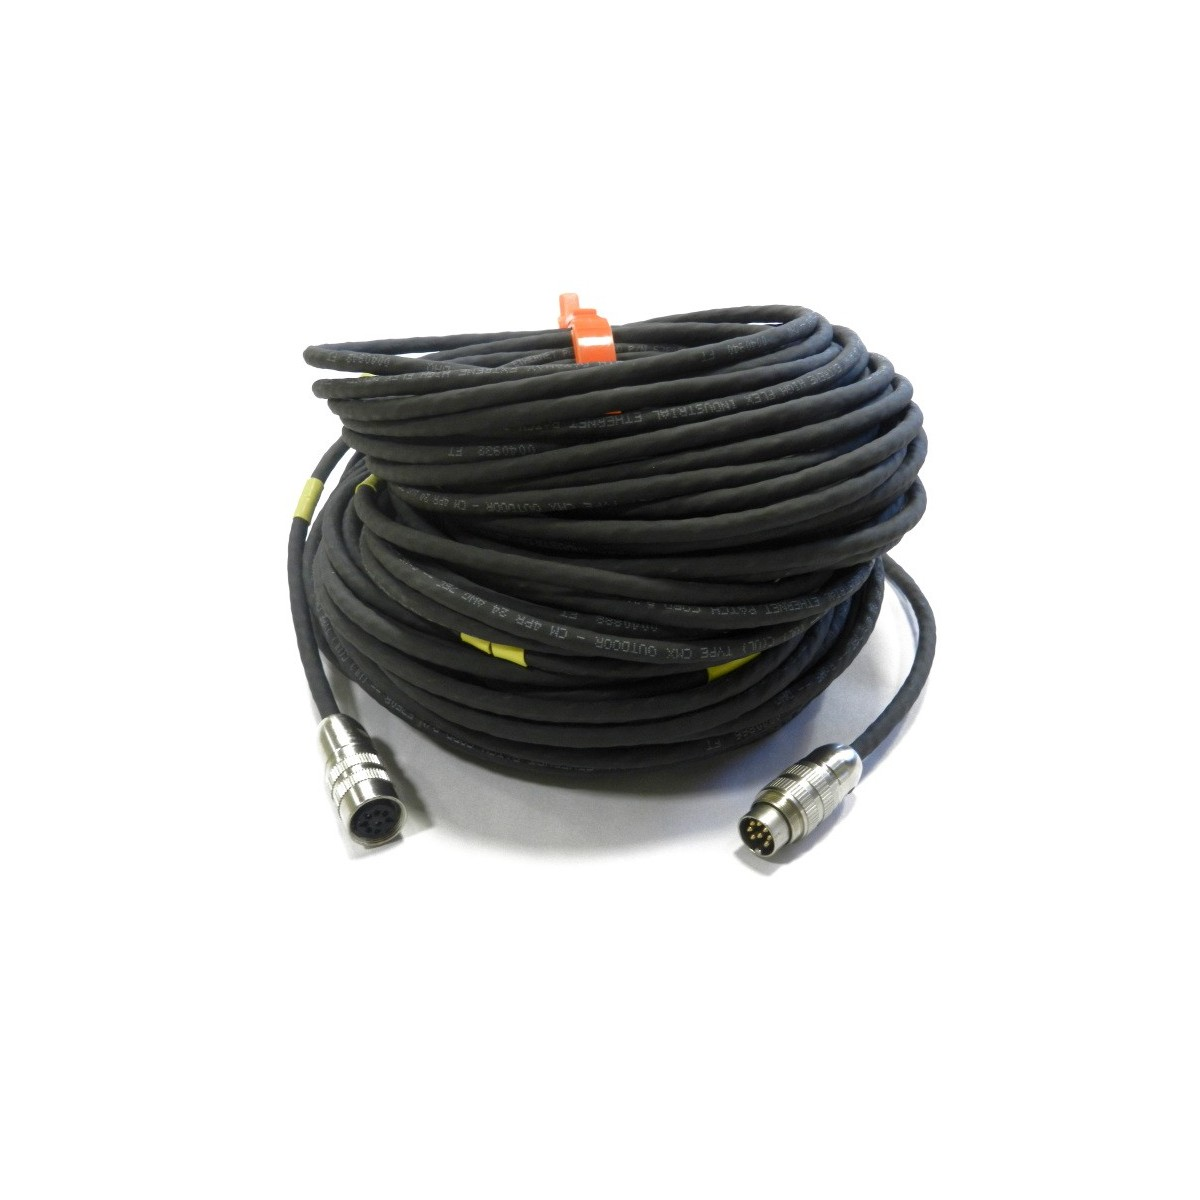 75 Ft Cable Extension for HydroView